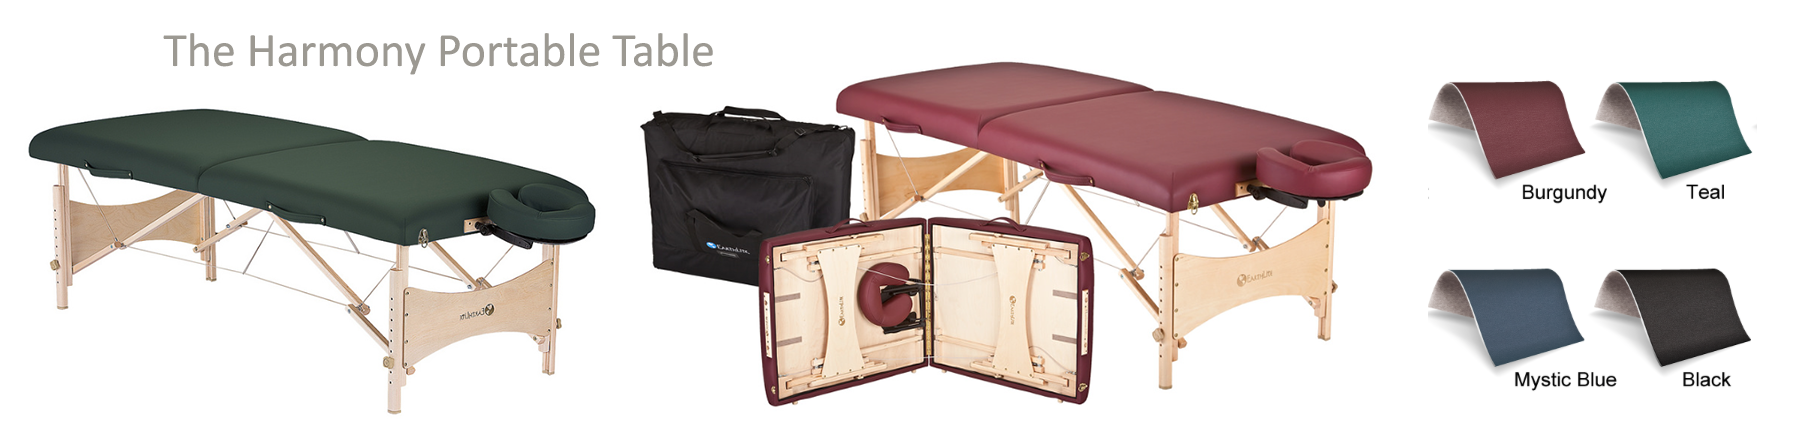 Massage table sale - Harmony Massage Table Collection by EarthLite.